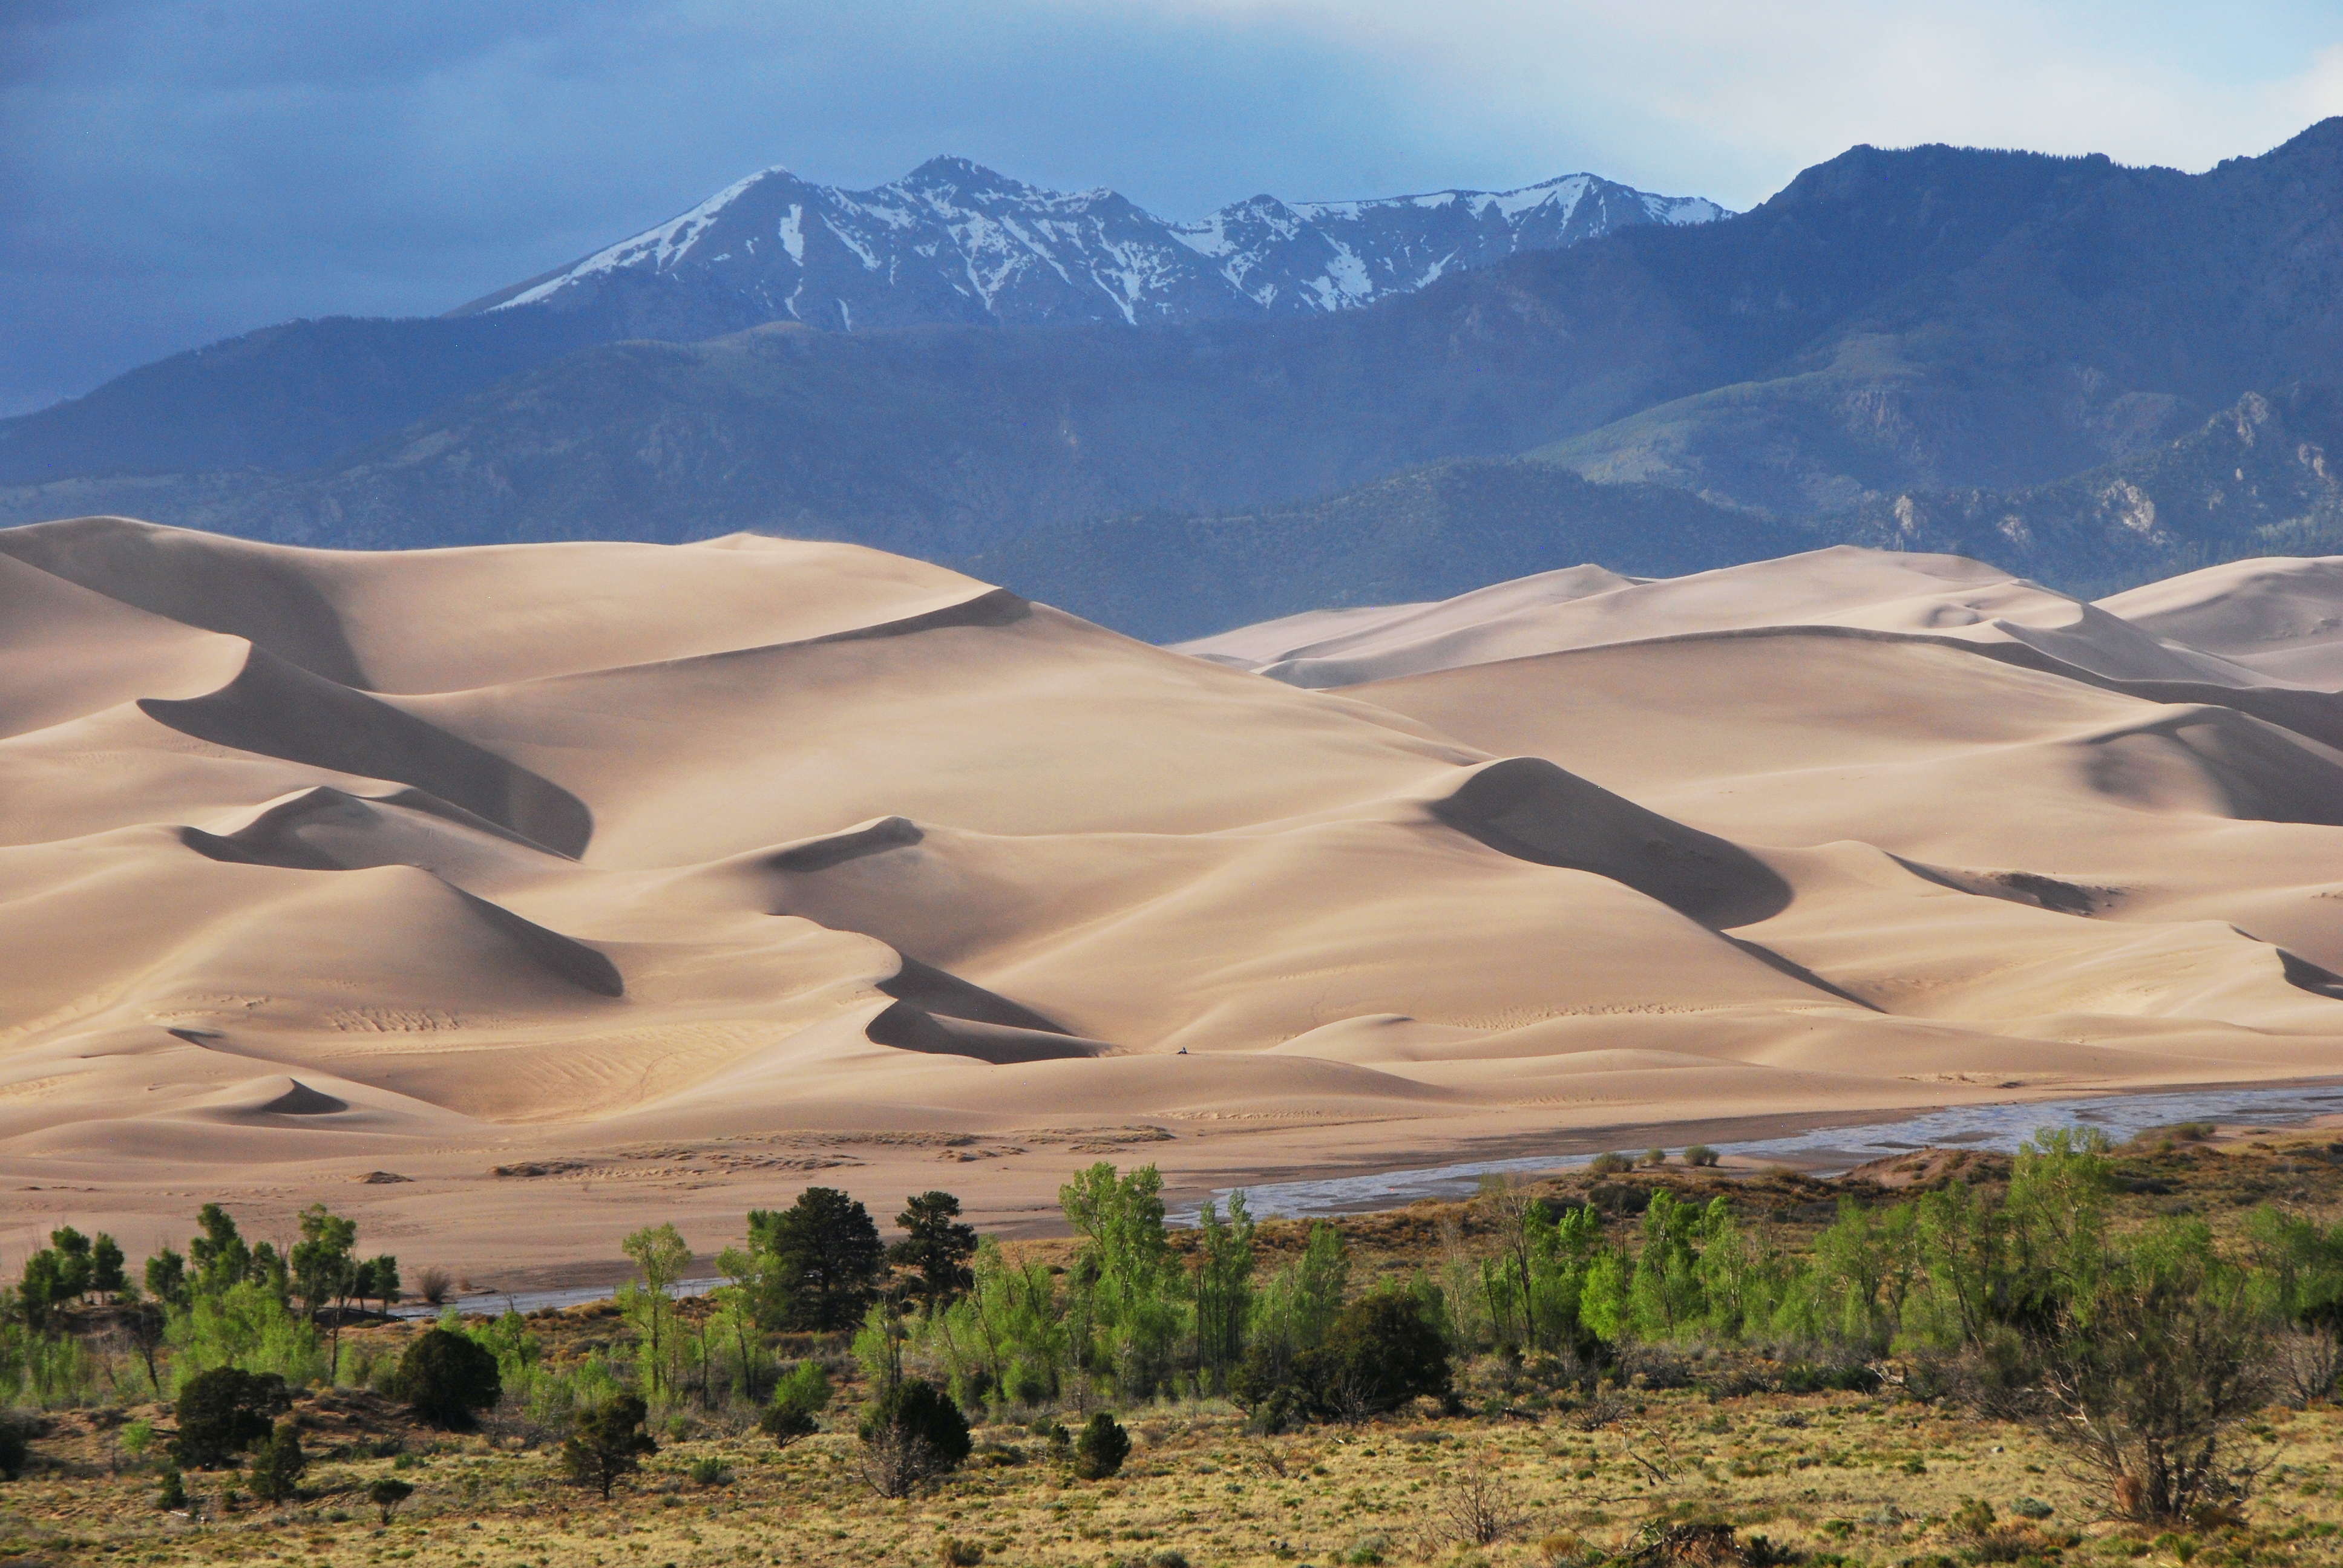 Natty and Trey's Big Adventure: Great Sand Dunes National ... |Great Sand Dunes